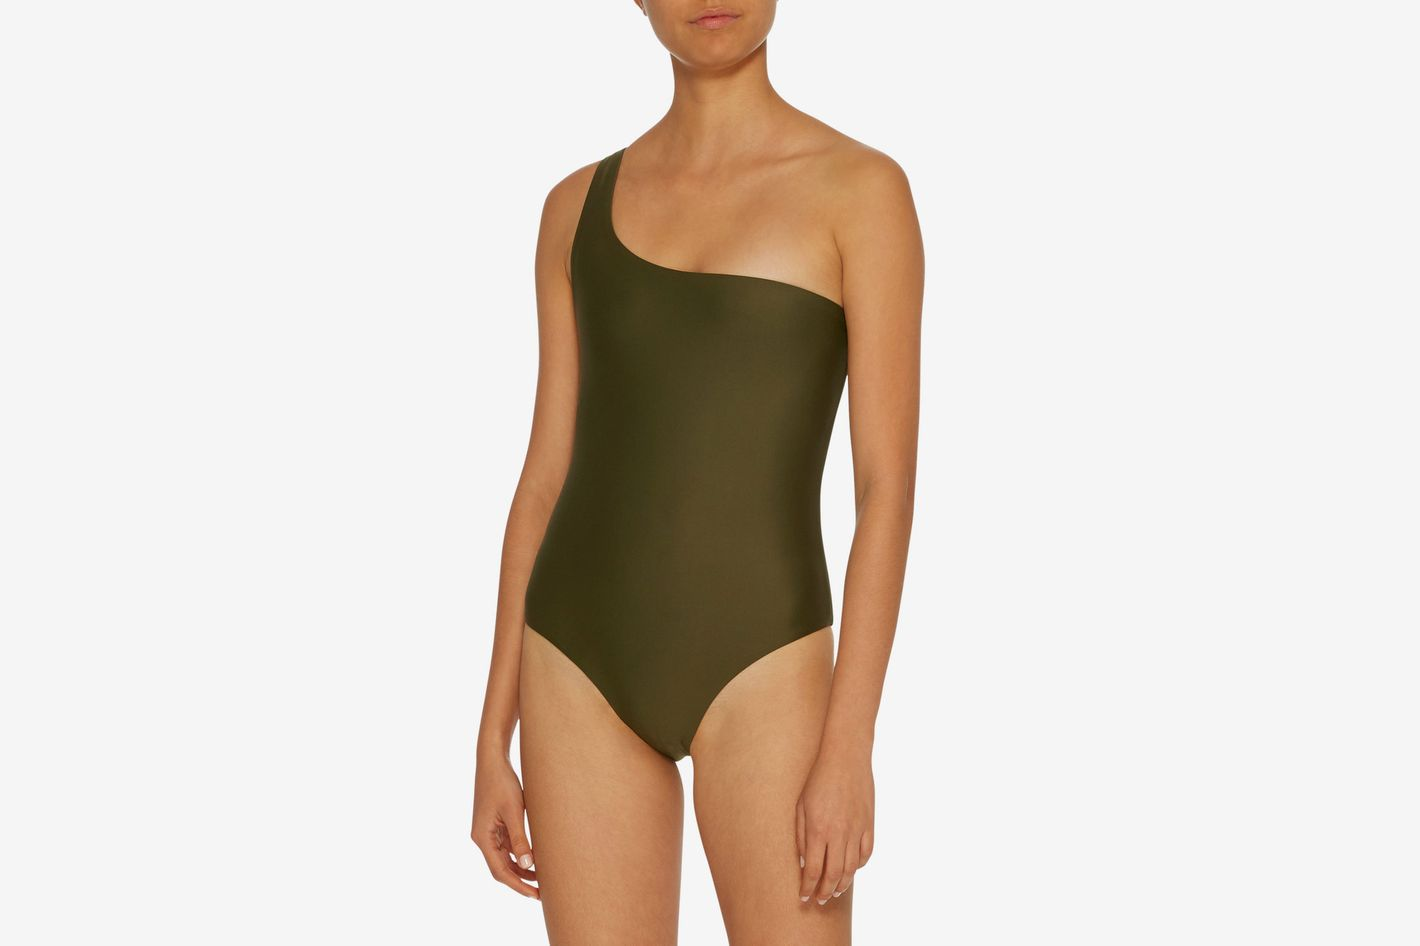 787aa7a9abf7d Jade Swim Apex One-Piece Swimsuit at Moda Operandi